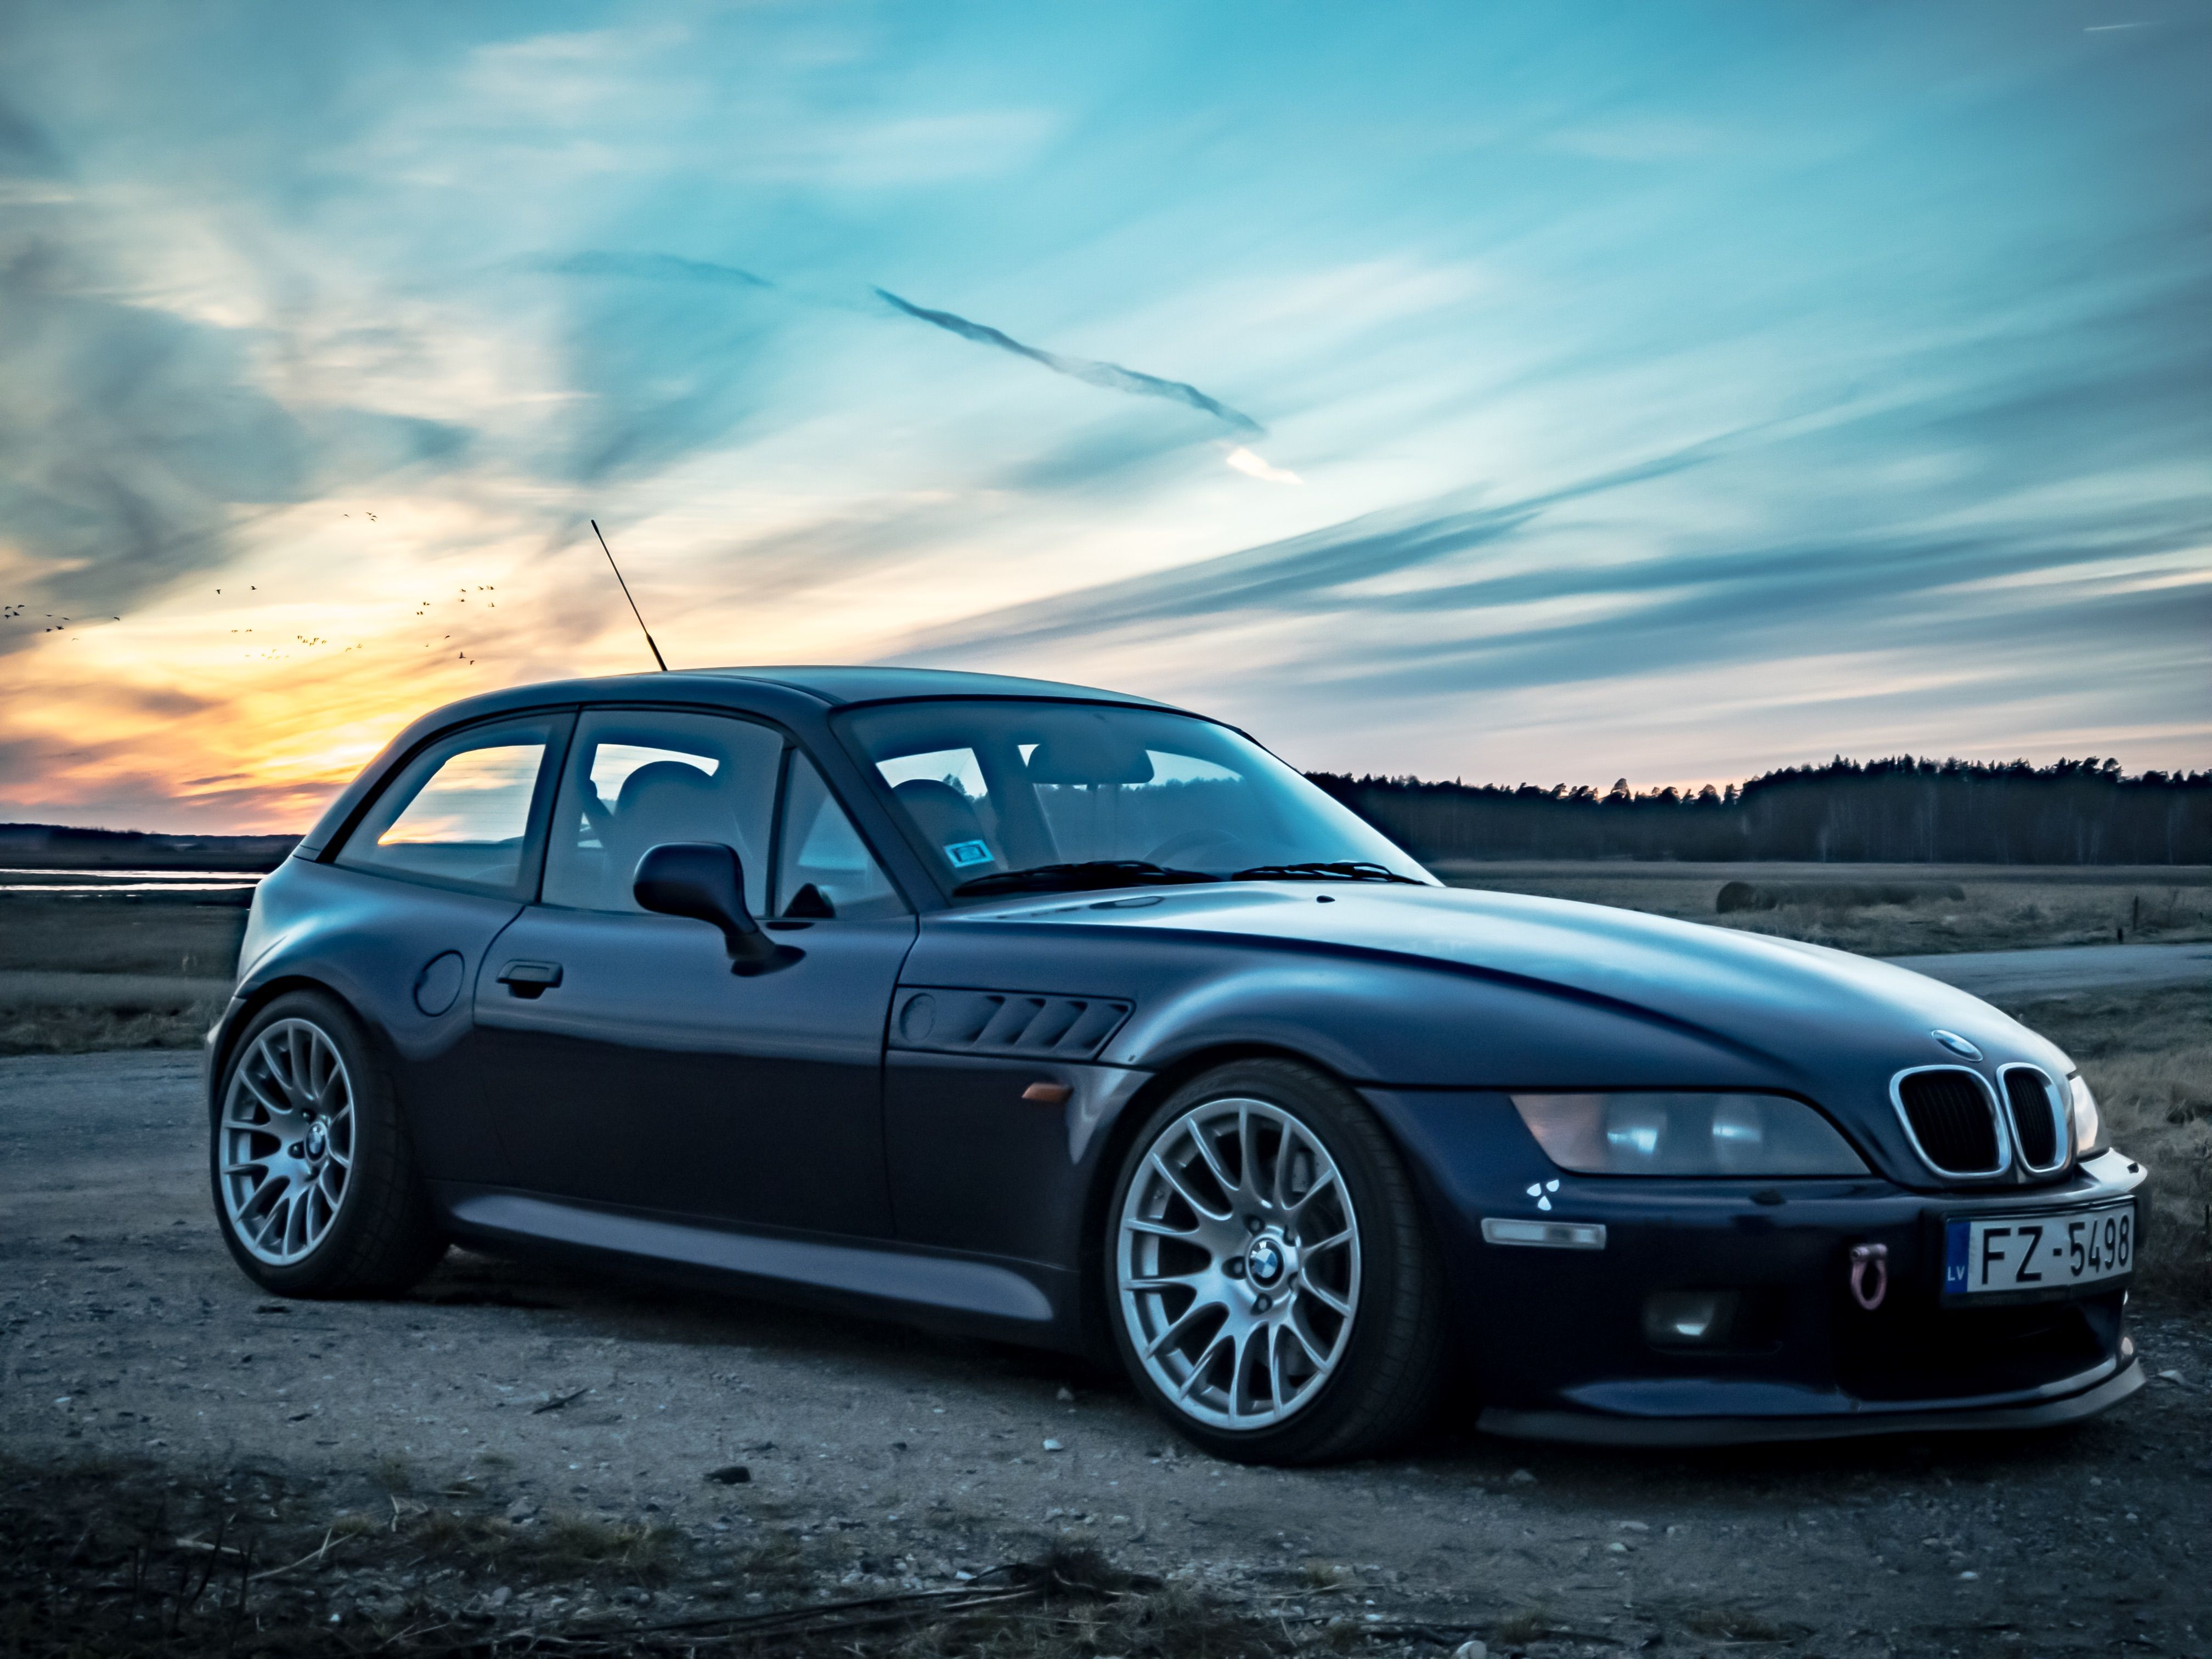 pandem kit bimmerworld gallery photo bmw wheels j bagged classic widebody phoenix rocketbunny on wallpaper ccw yellow